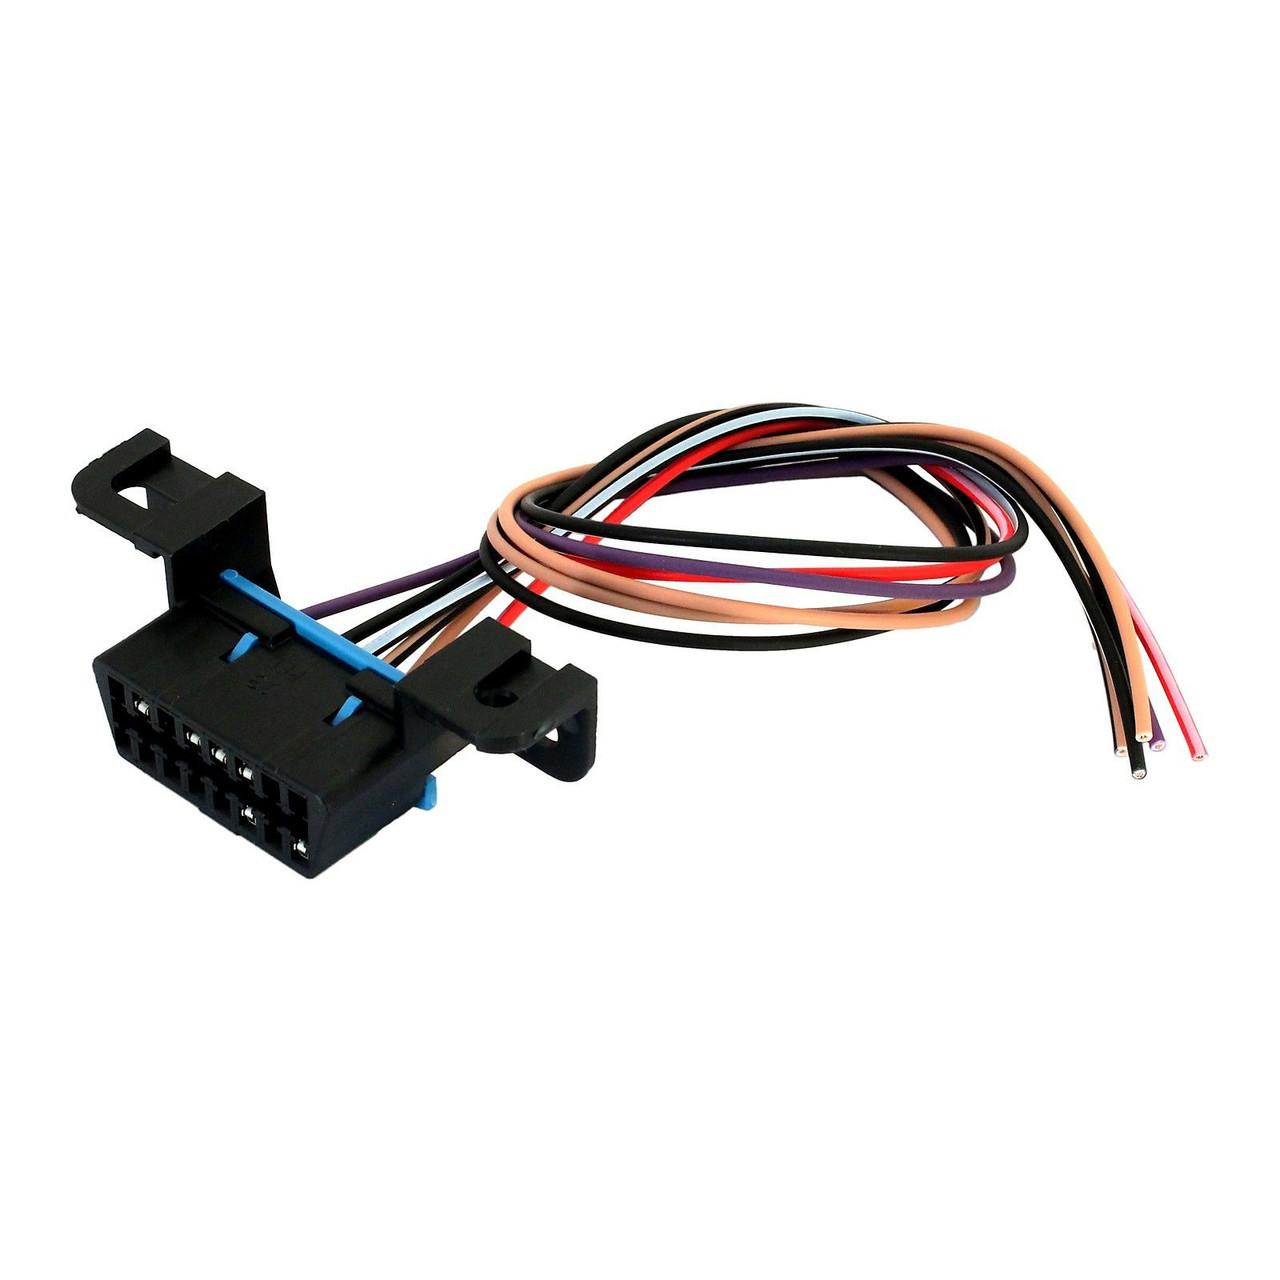 hight resolution of obdii obd2 j1962 class 2 can bus wiring harness connector pigtailobd2 wiring harness 3